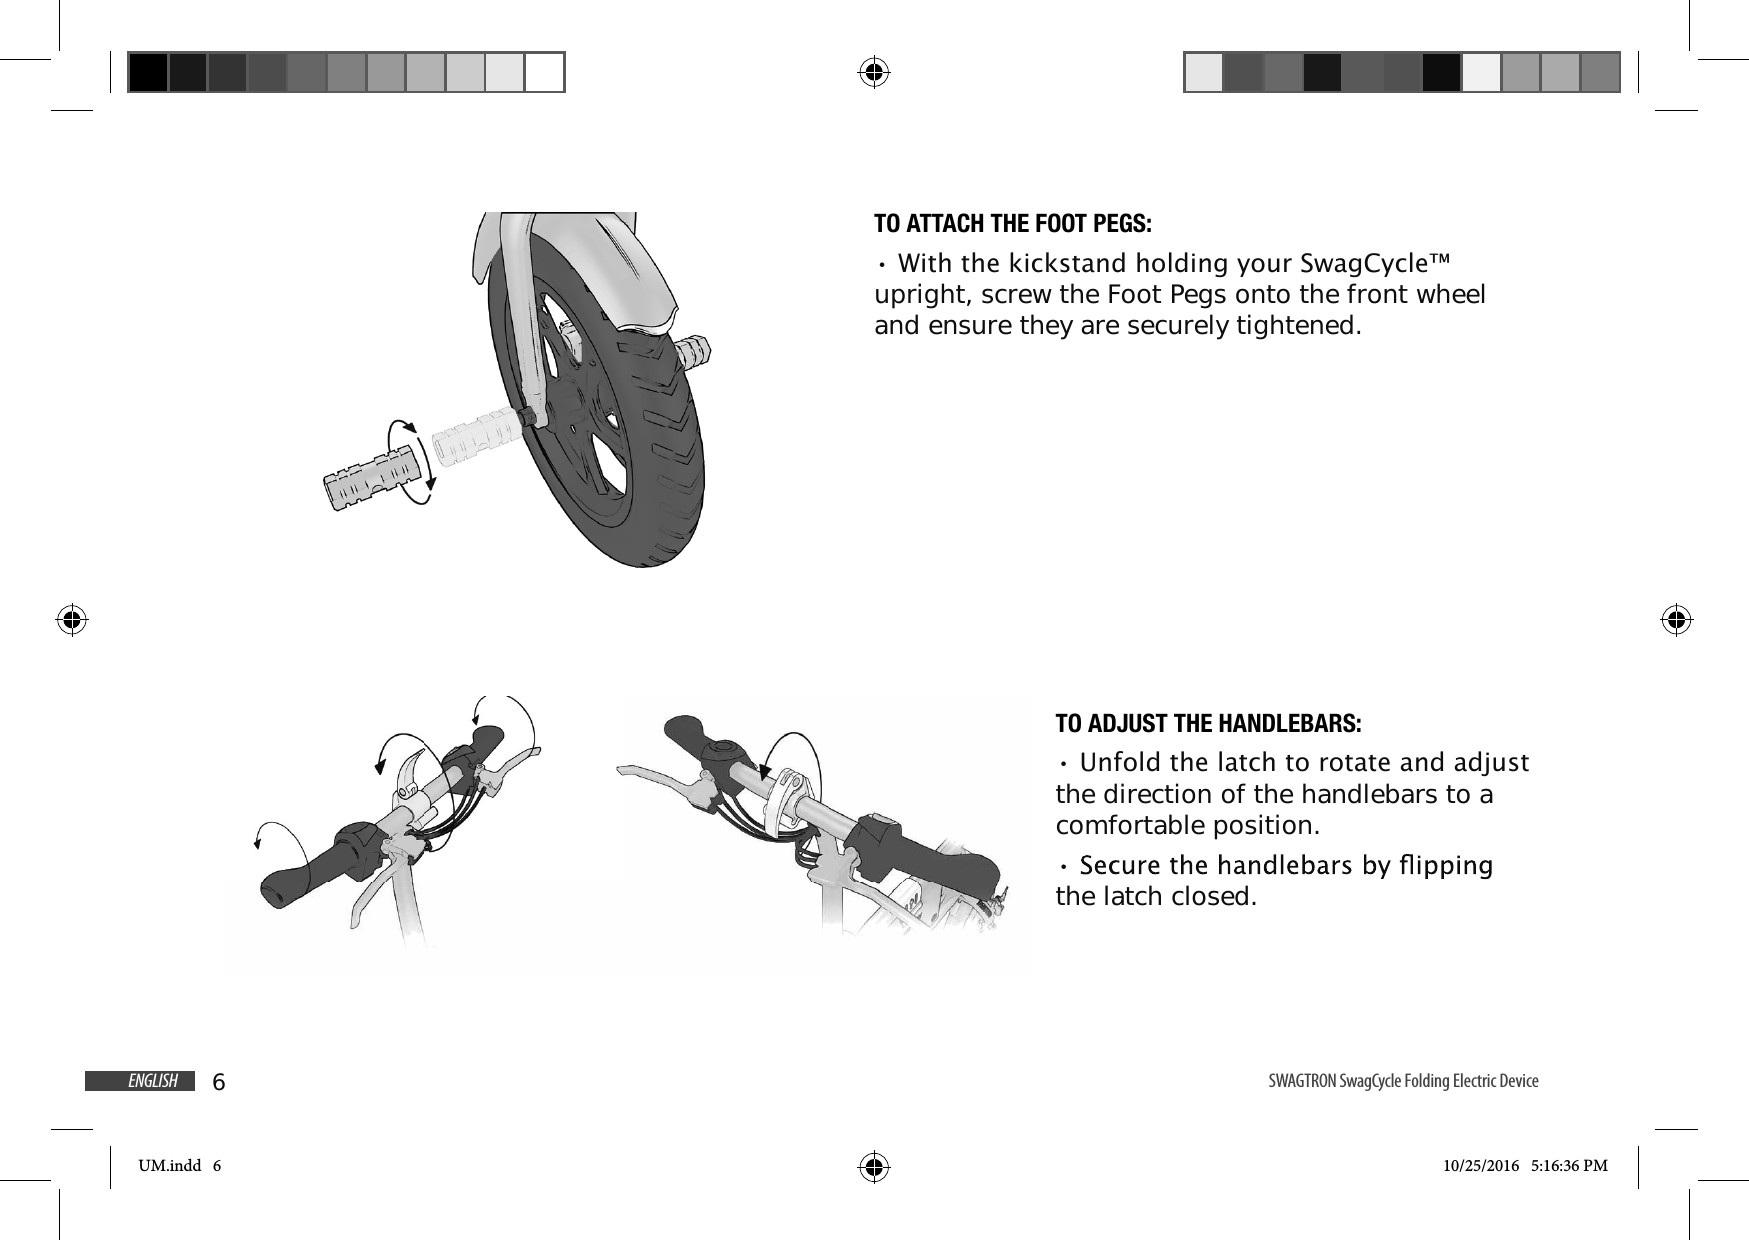 Brake Pad Diagram Sc1 Swagcycle Folding Electric Scooter User Manual Swagcycle Of Brake Pad Diagram